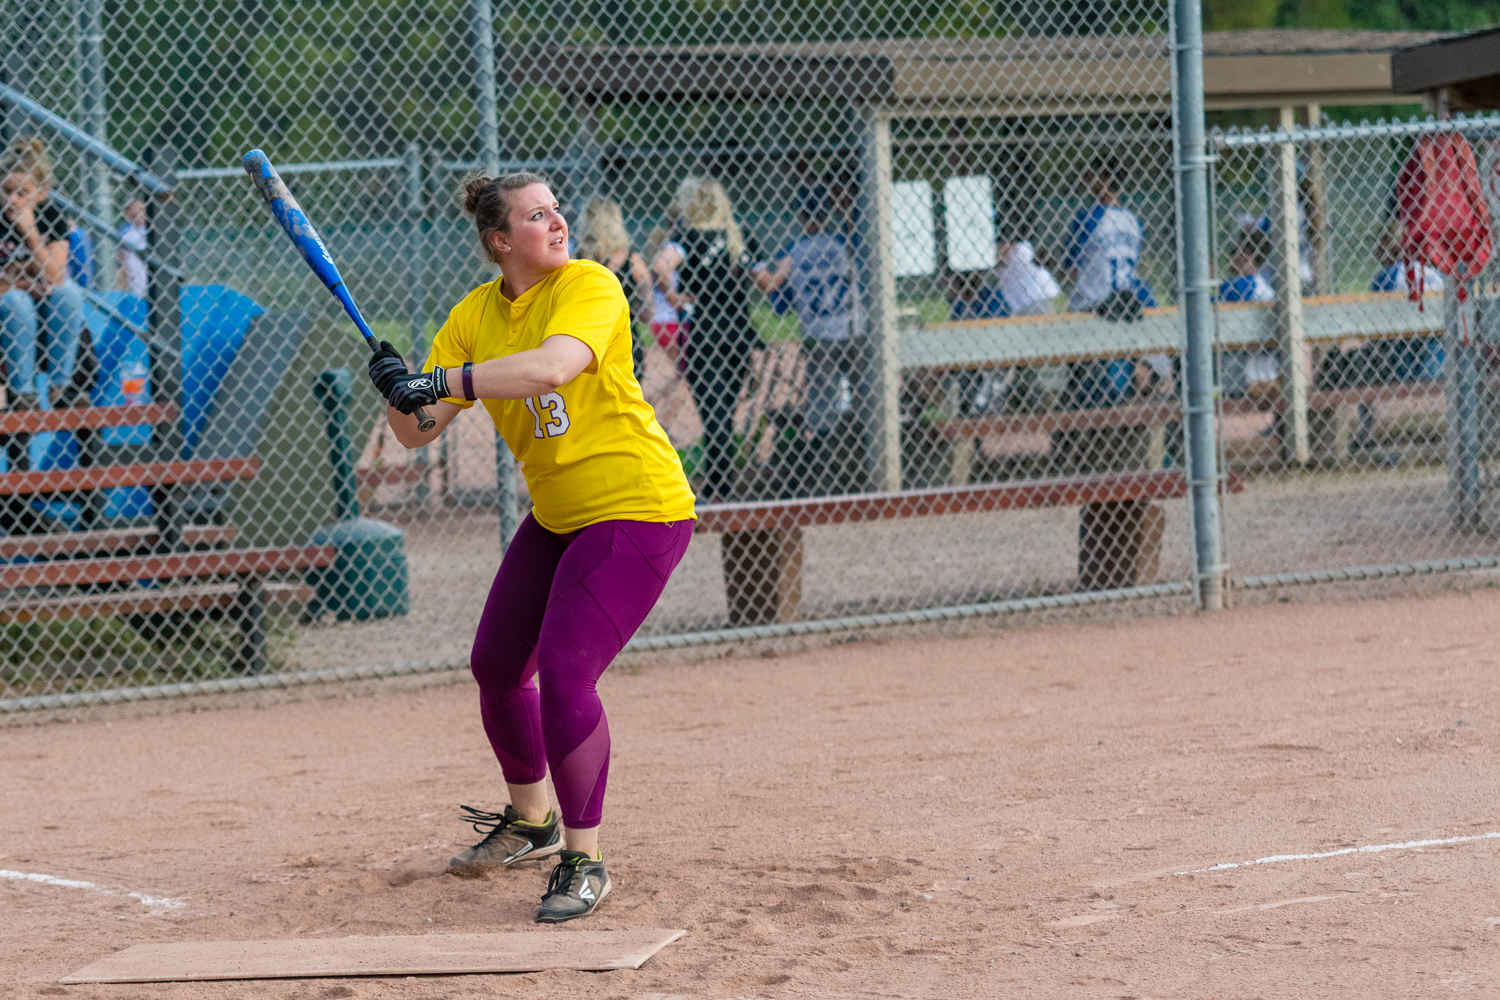 2017 08 23 Lakers vs Mud Trumpets-40.jpg